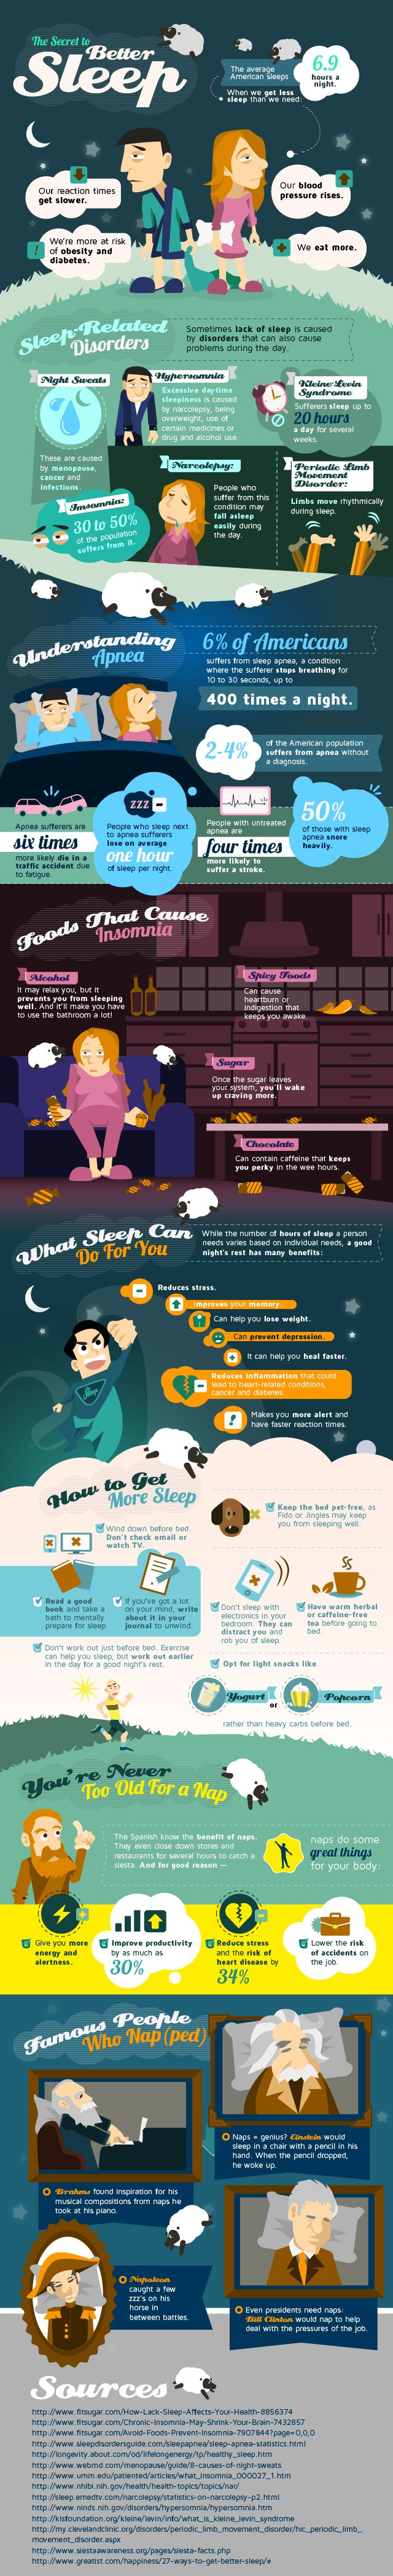 The Secret to Better Sleep #IN